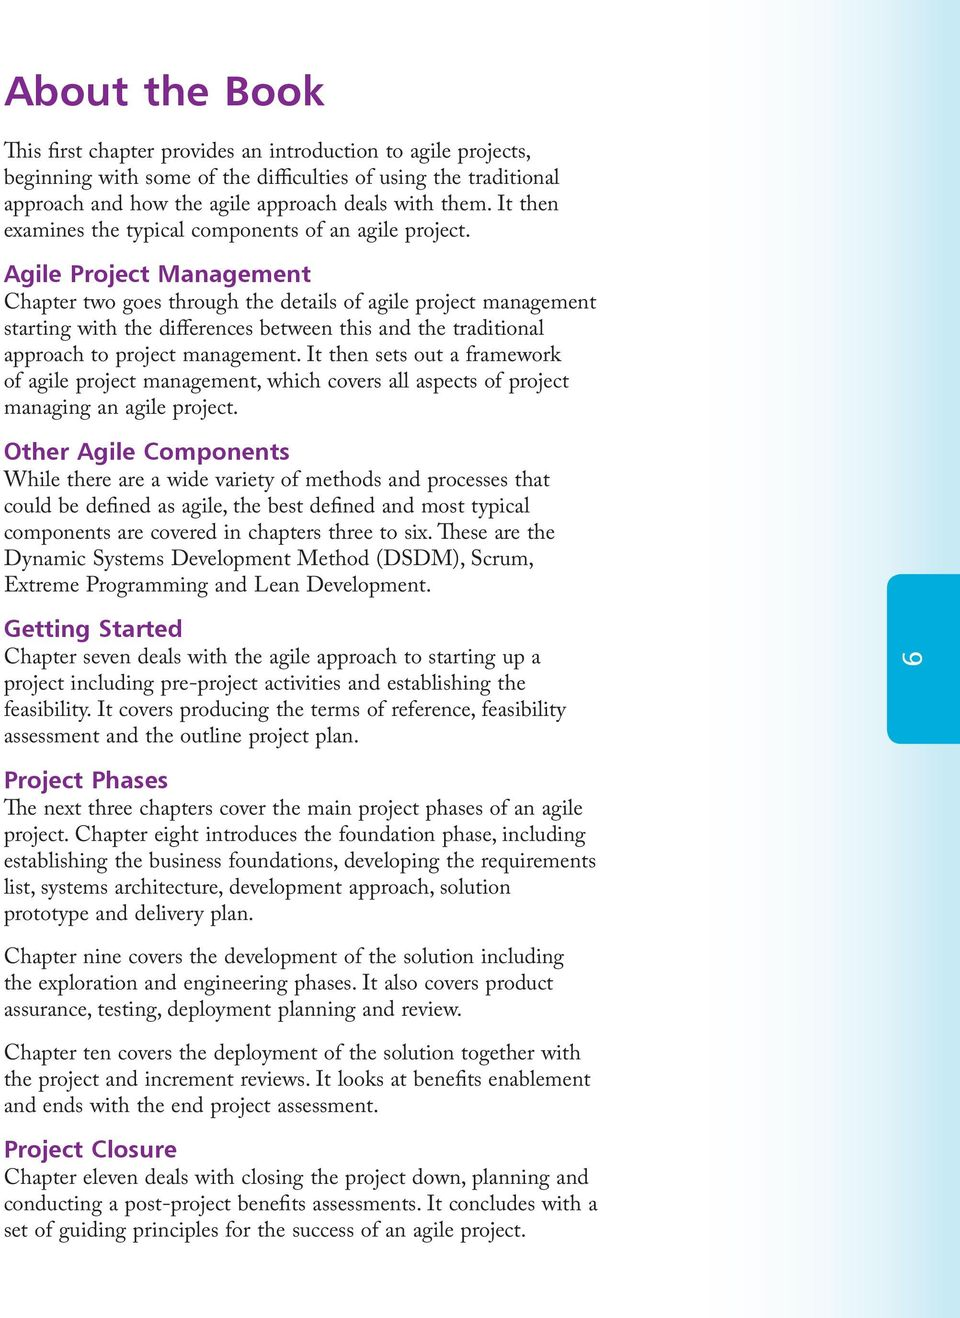 Agile Project Management Chapter two goes through the details of agile project management starting with the differences between this and the traditional approach to project management.